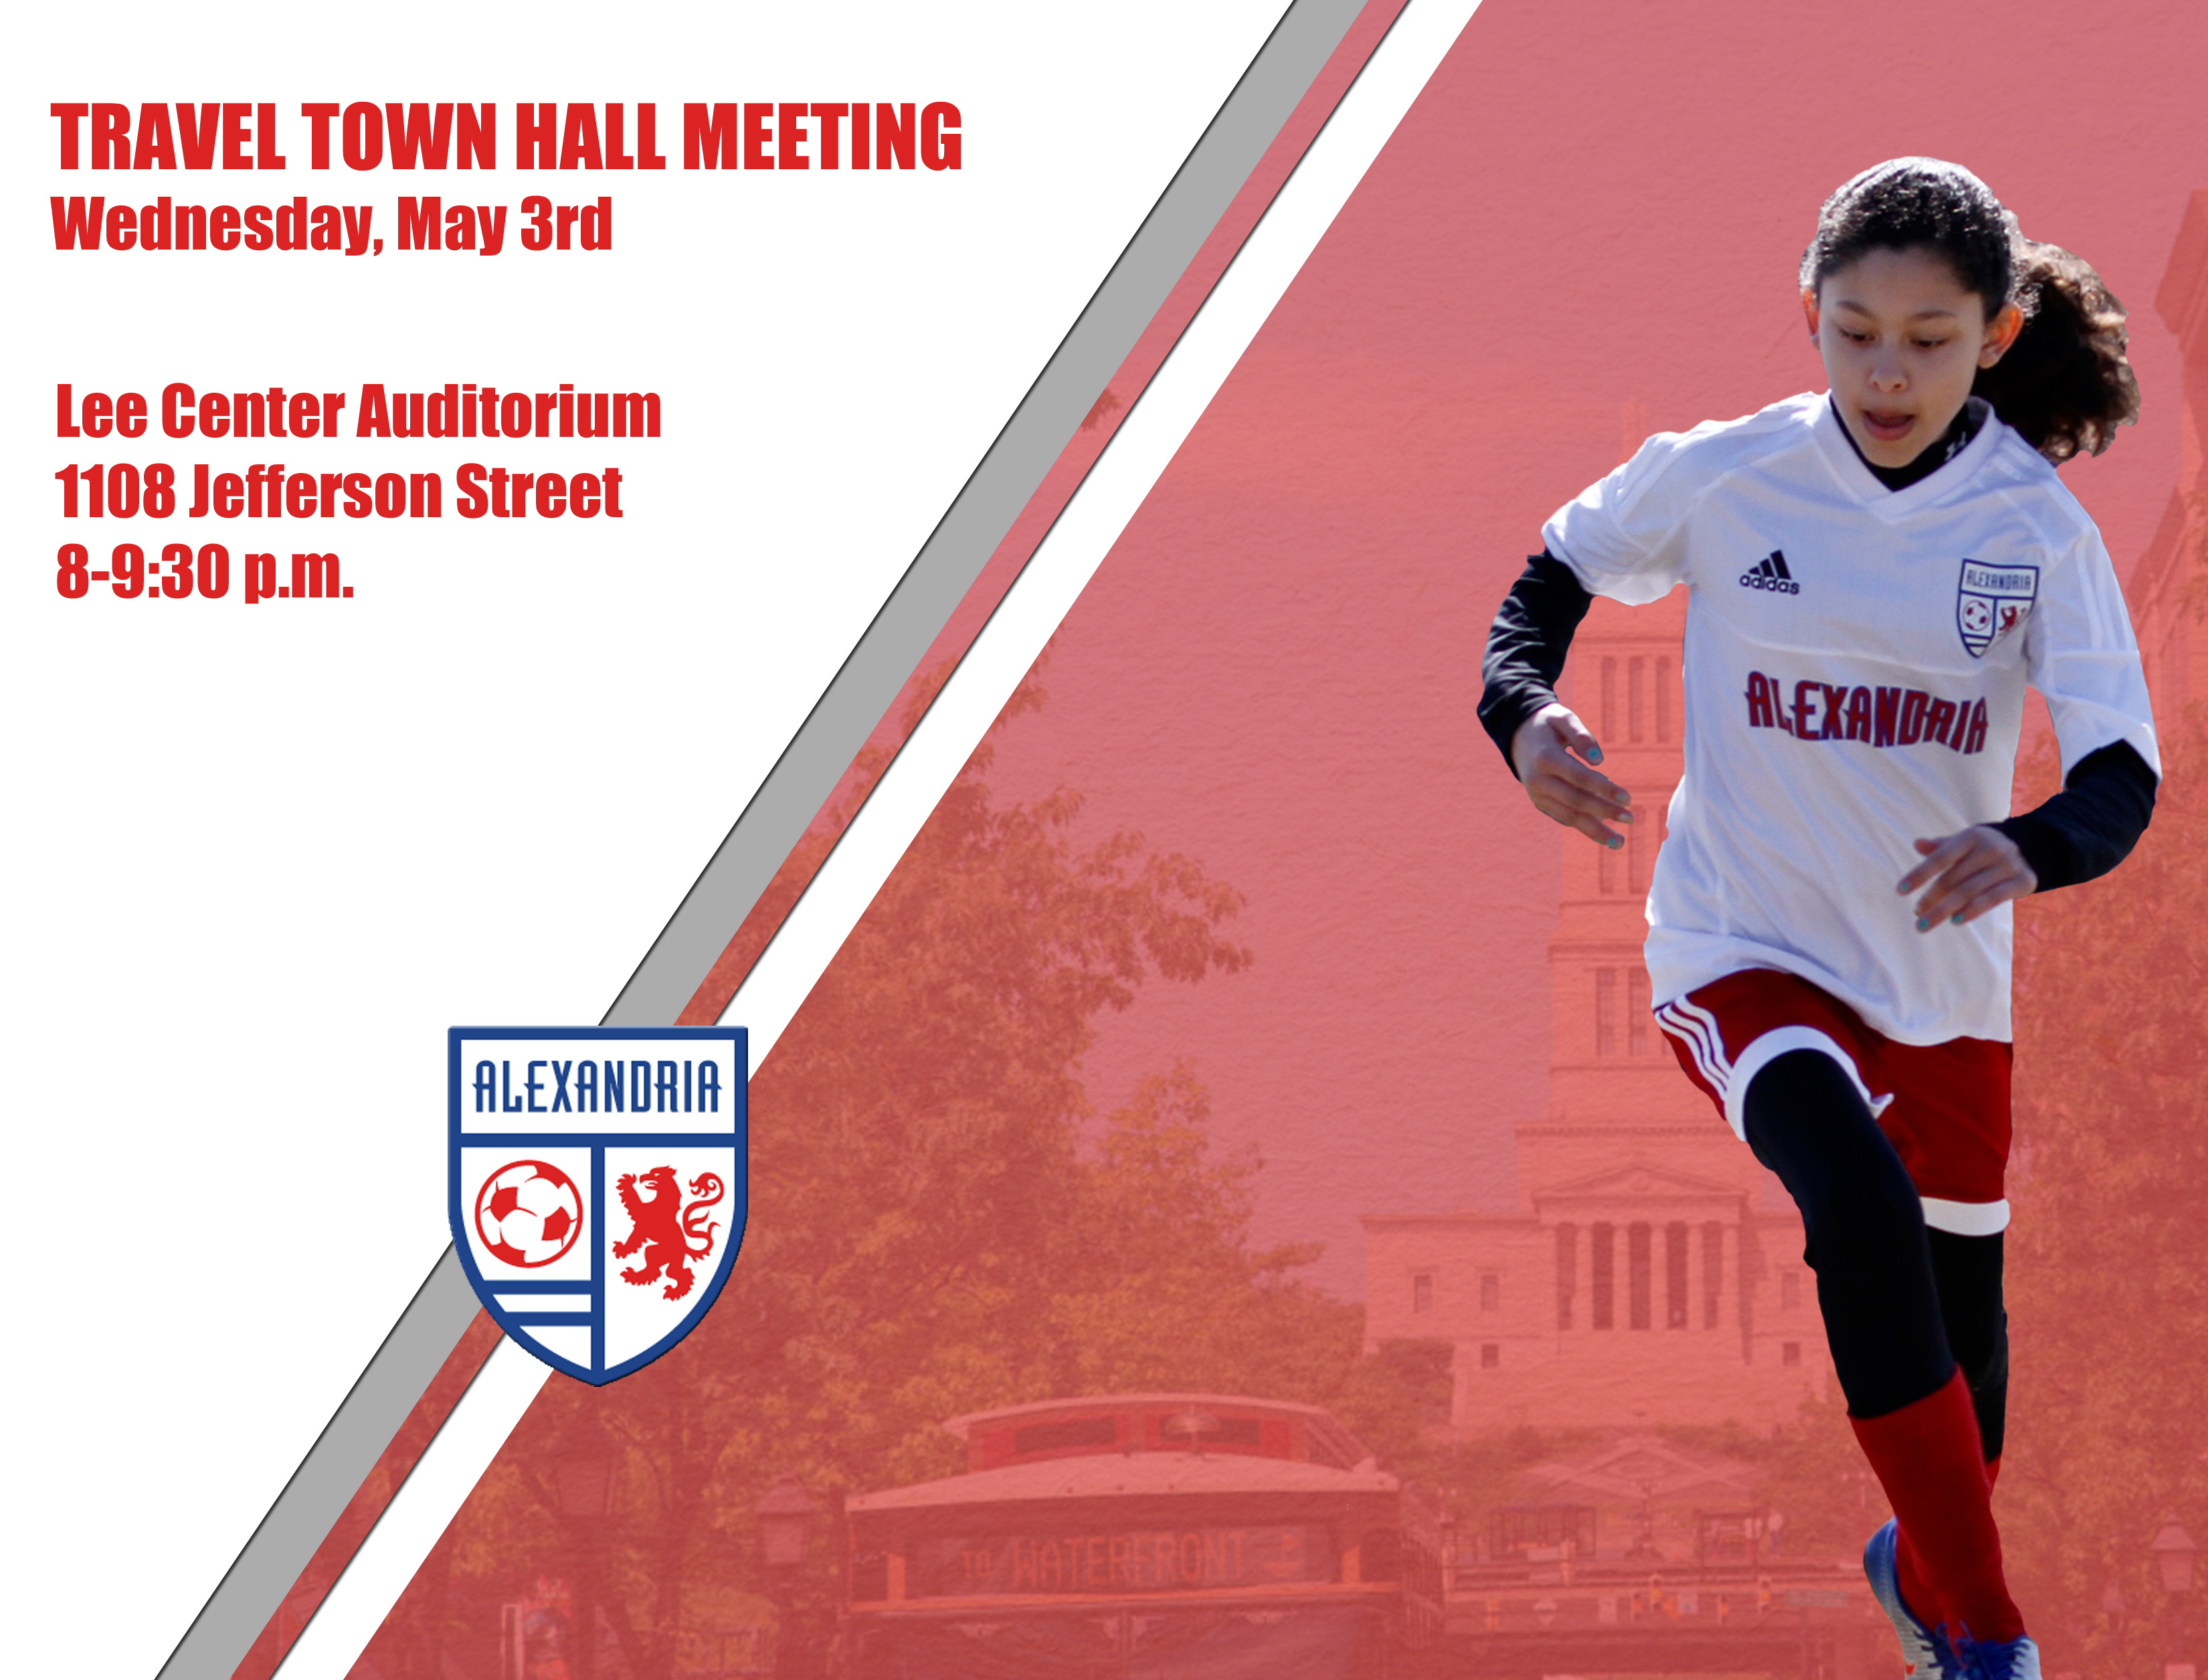 Travel Soccer Town Hall Meeting | Wed., May 3rd